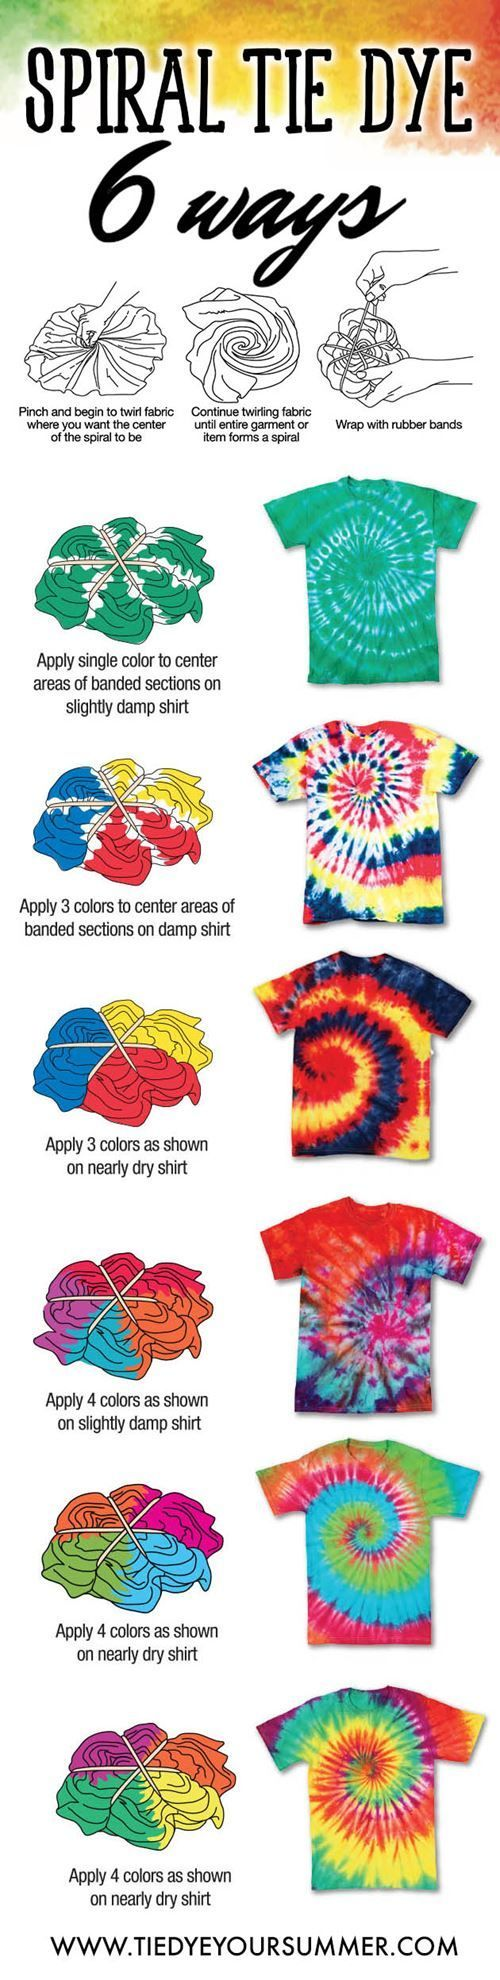 Tie Dye your summer with one of these cool spiral tie dudufue shirt ideas.  The way you dye you spiral creates a different tie dye pattern/affect like shown.  Try these easy techniques for your next tie dye party!